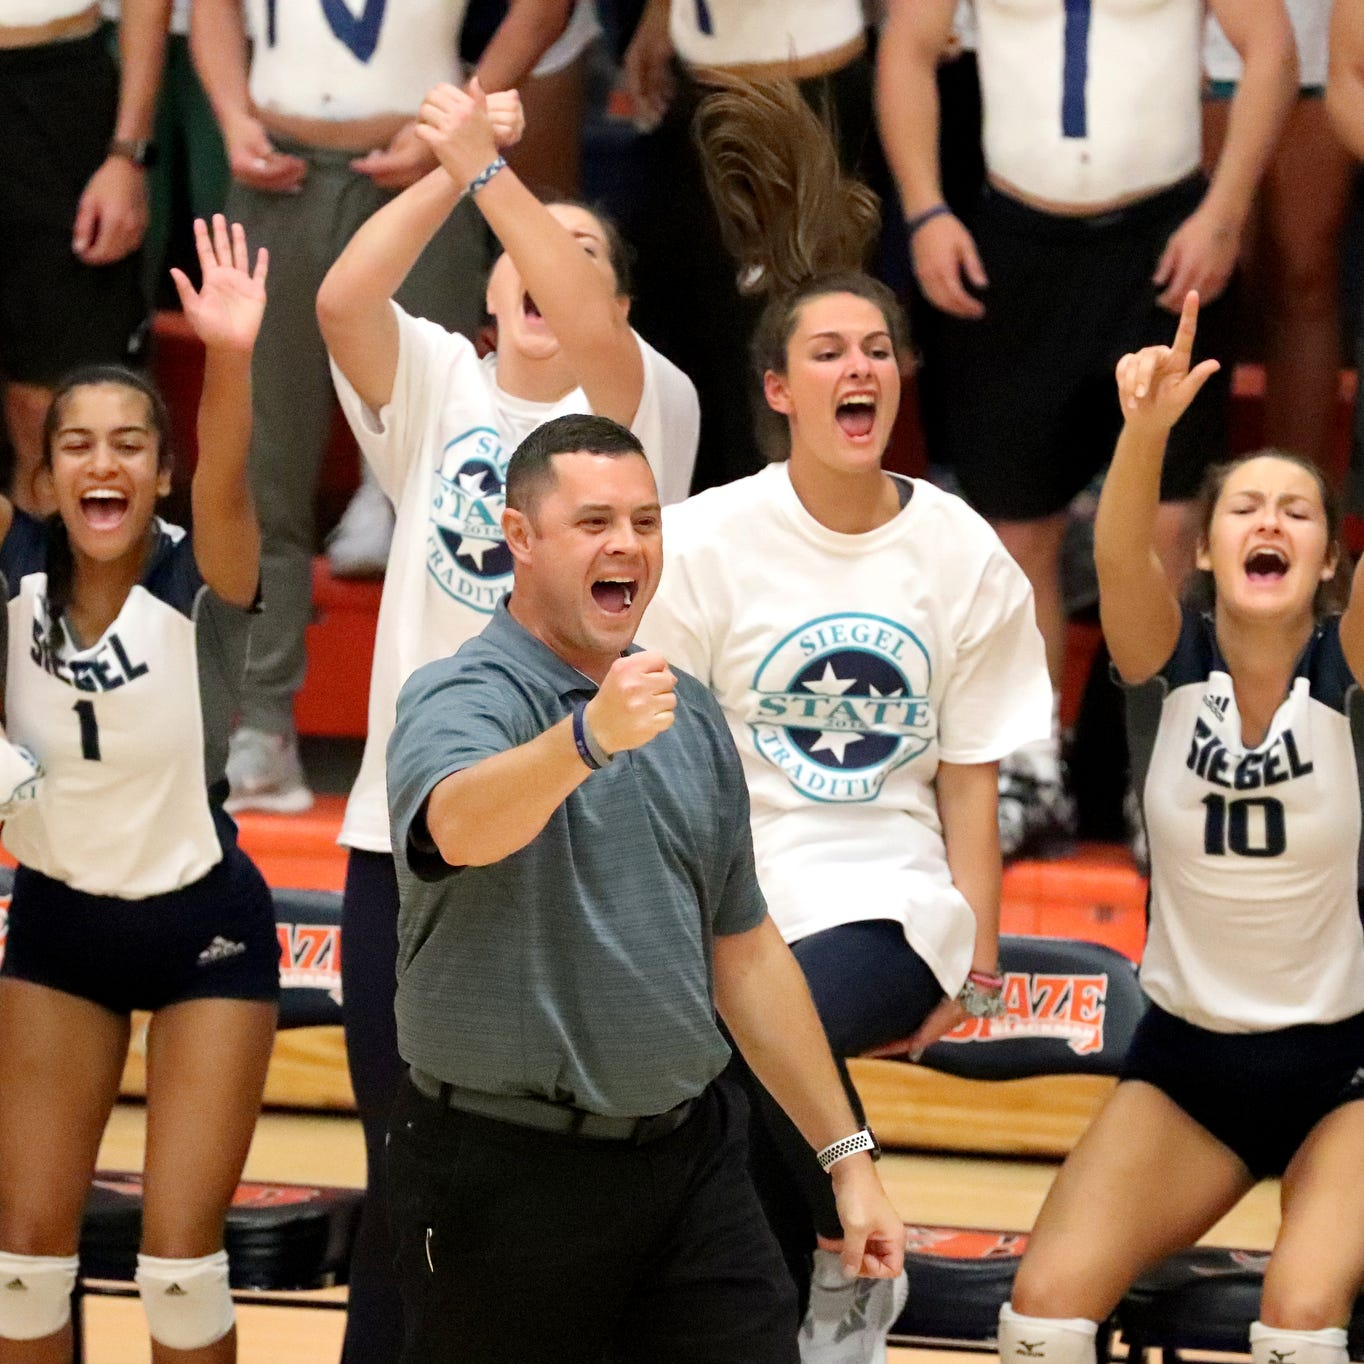 Siegel volleyball headed to state championship match for first time